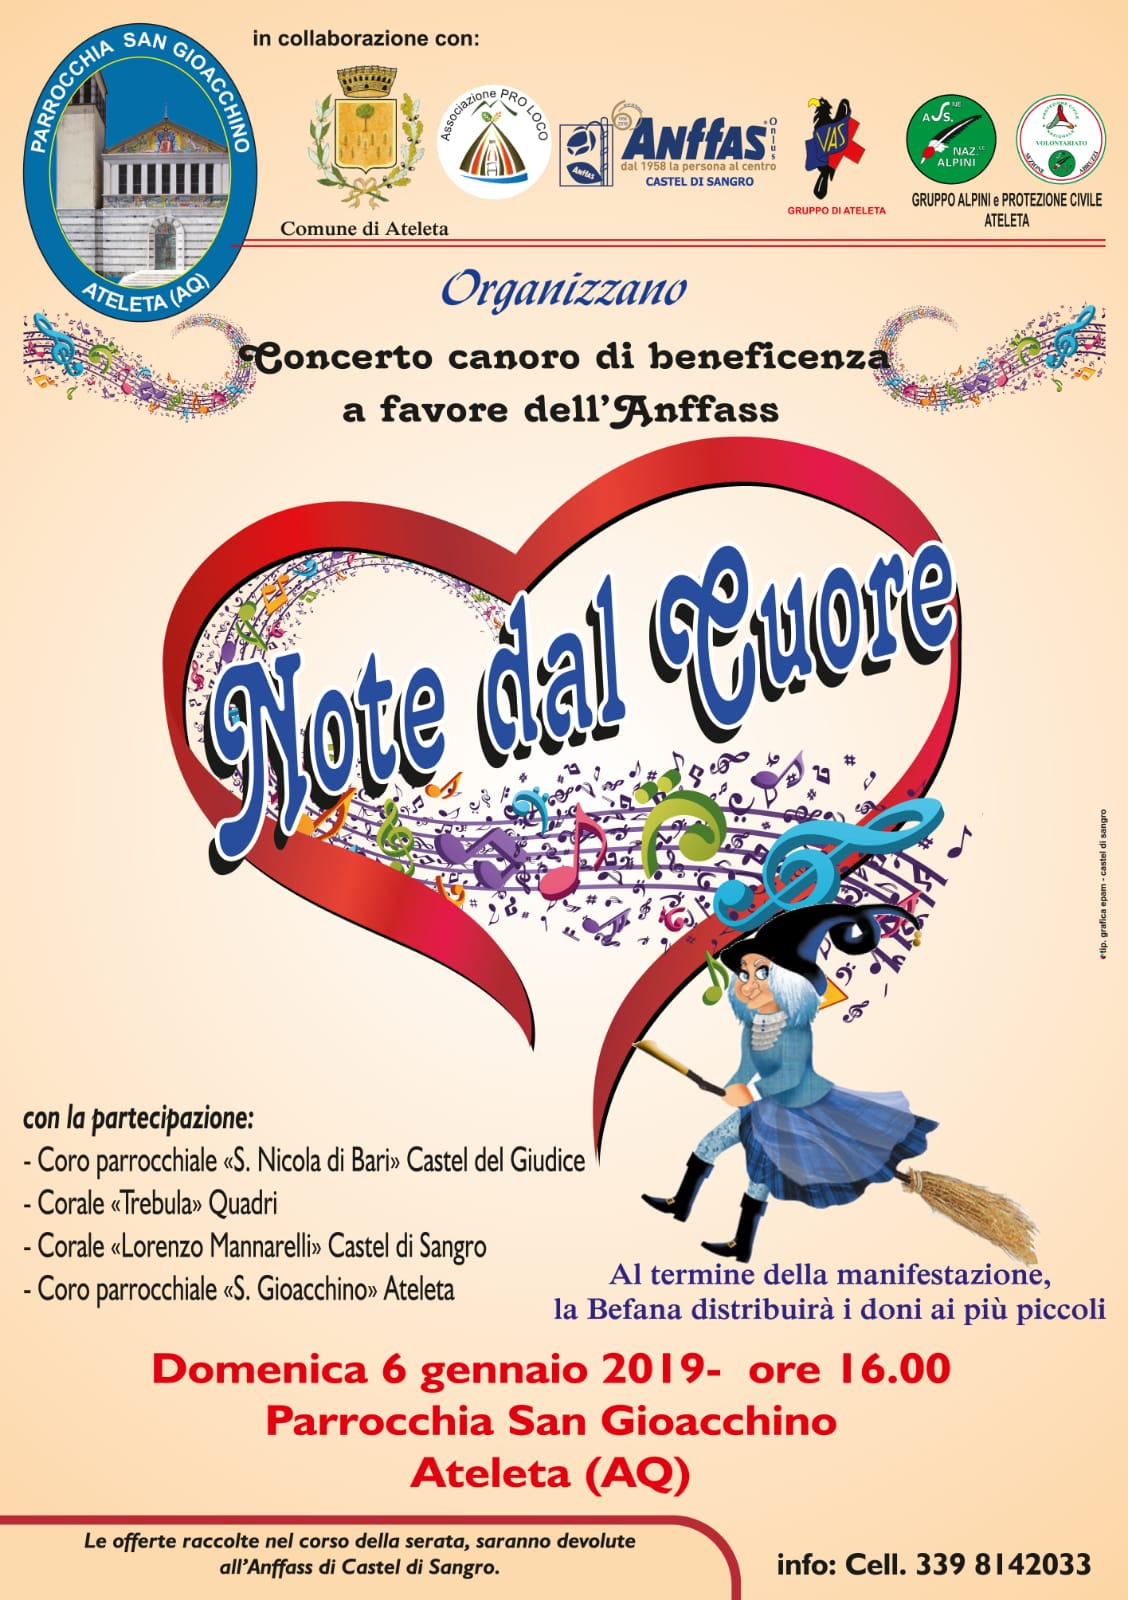 Note dal Cuore - Concerto Canoro di Beneficenza a favore dell'Anffass